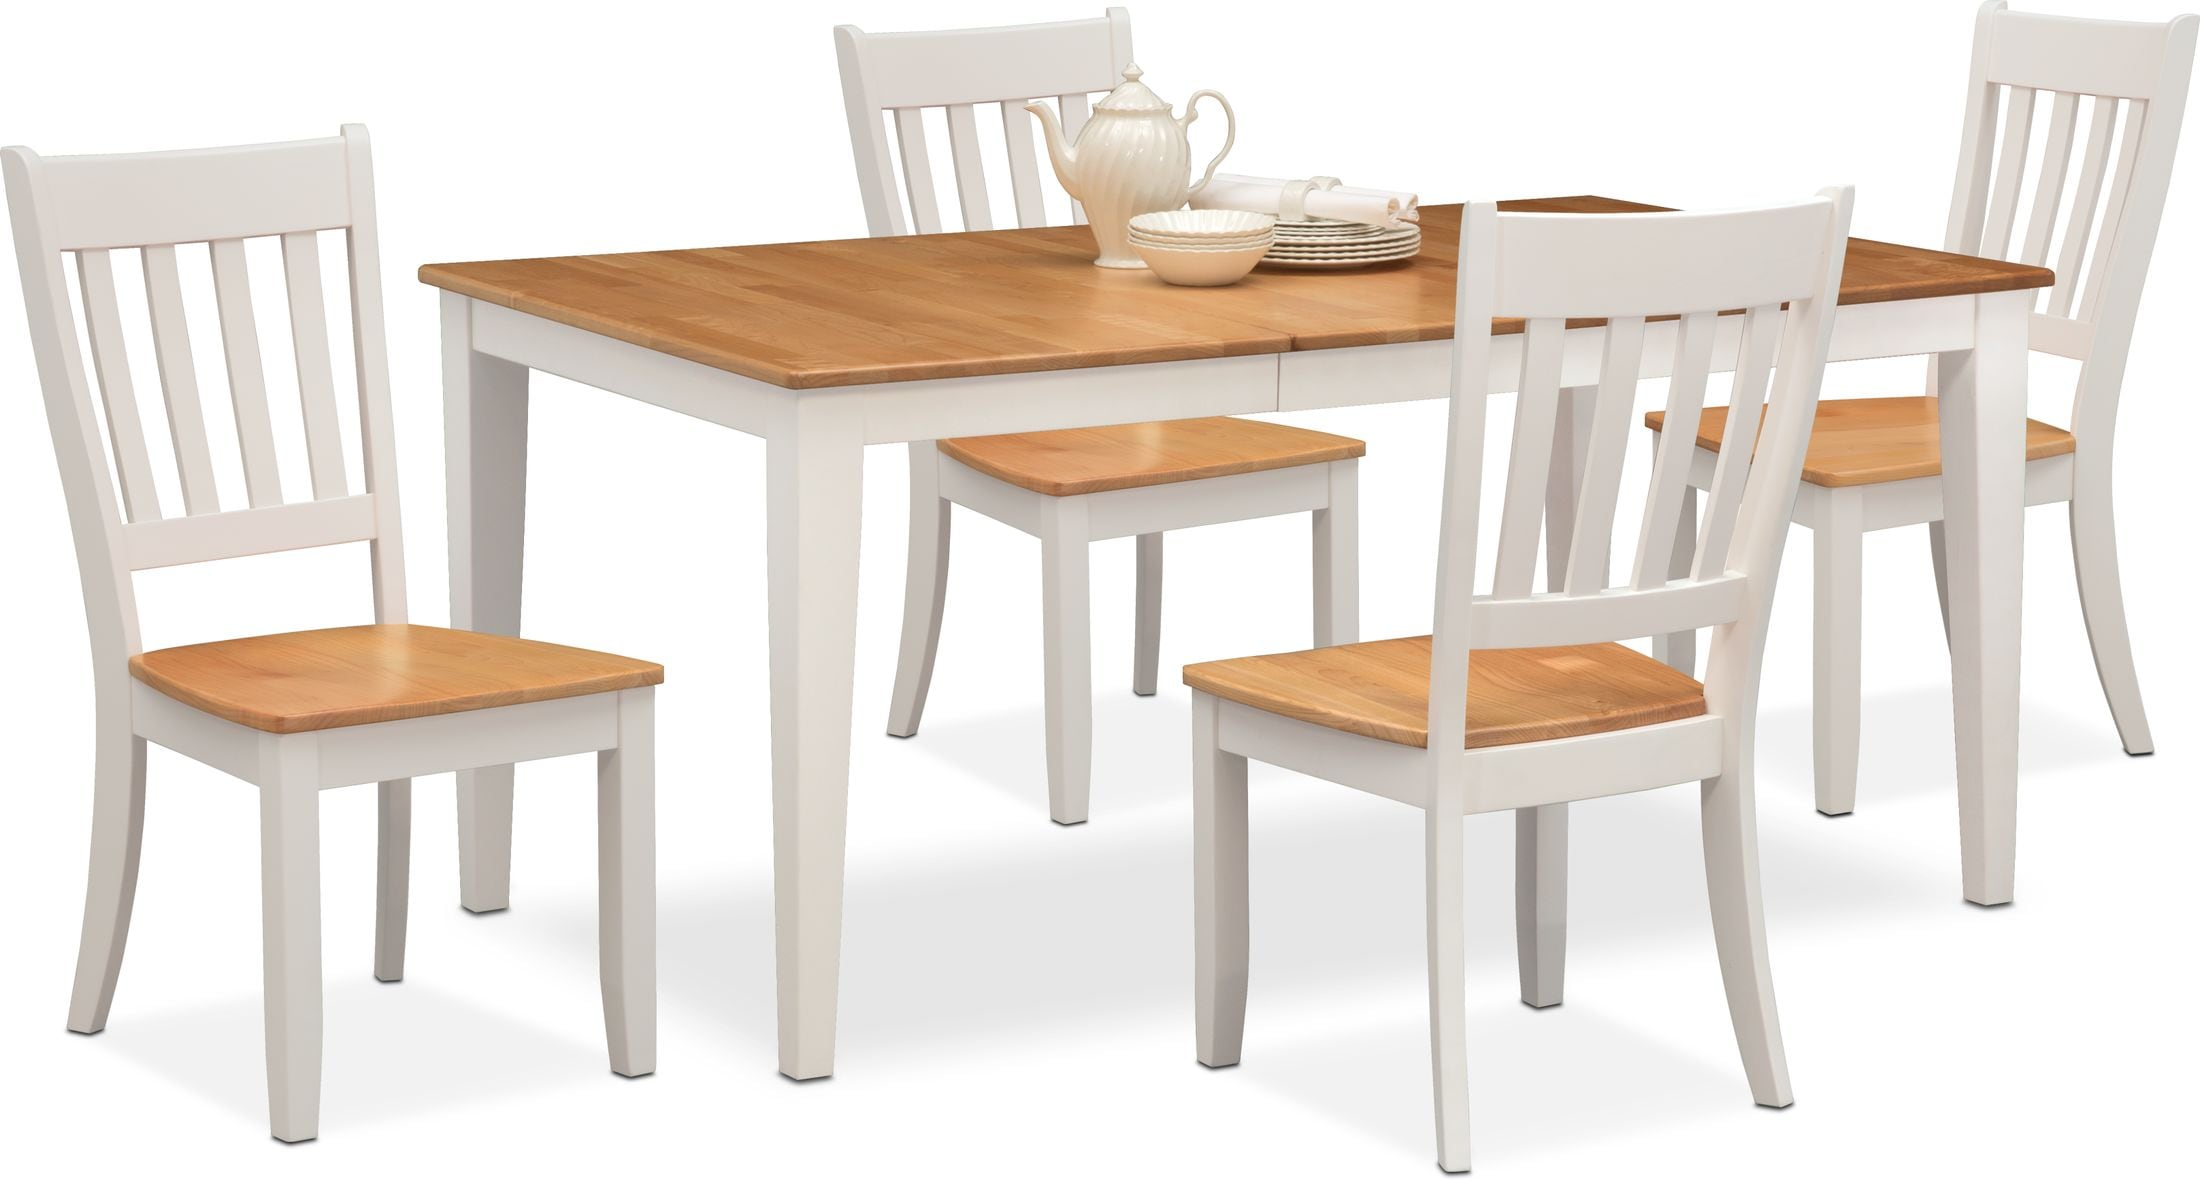 Nantucket Dining Table And 4 Slat Back Dining Chairs Value City Furniture